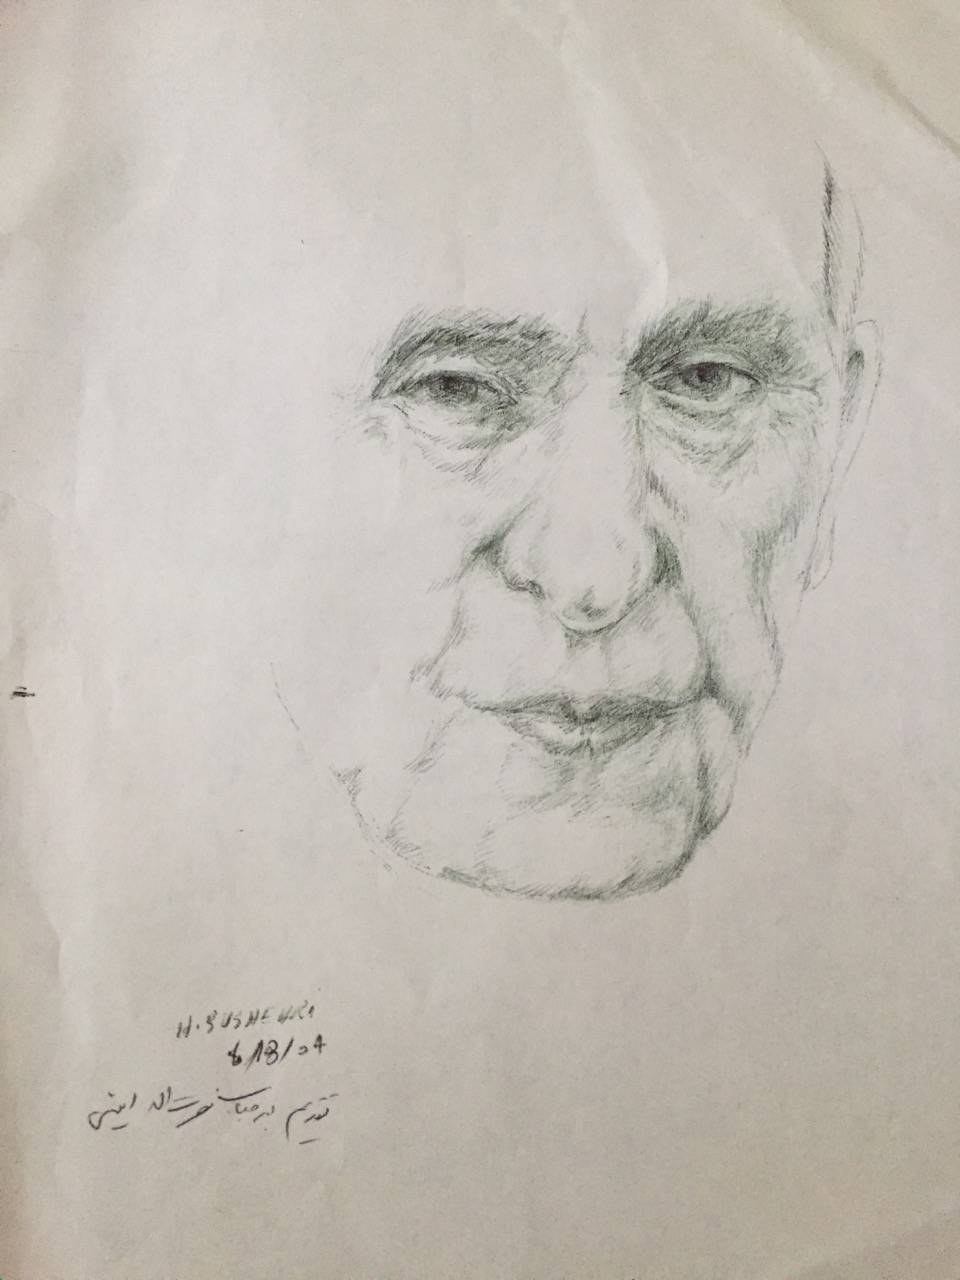 Drawing of Dr. Mossadegh by N.S. | Personal collection of Fariba Amini